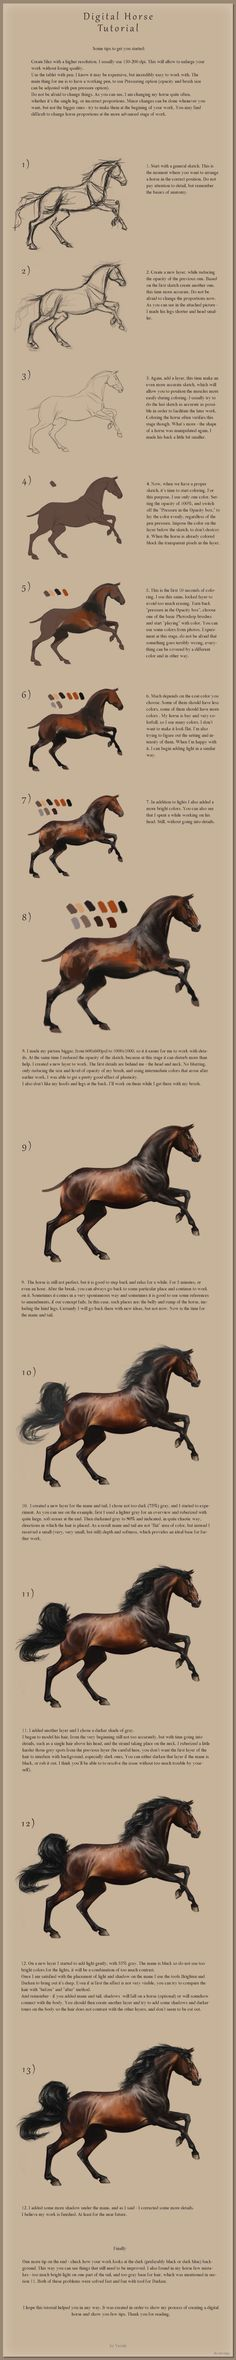 Digital Horse Tutorial by Yaveth.deviantart.com on @deviantART